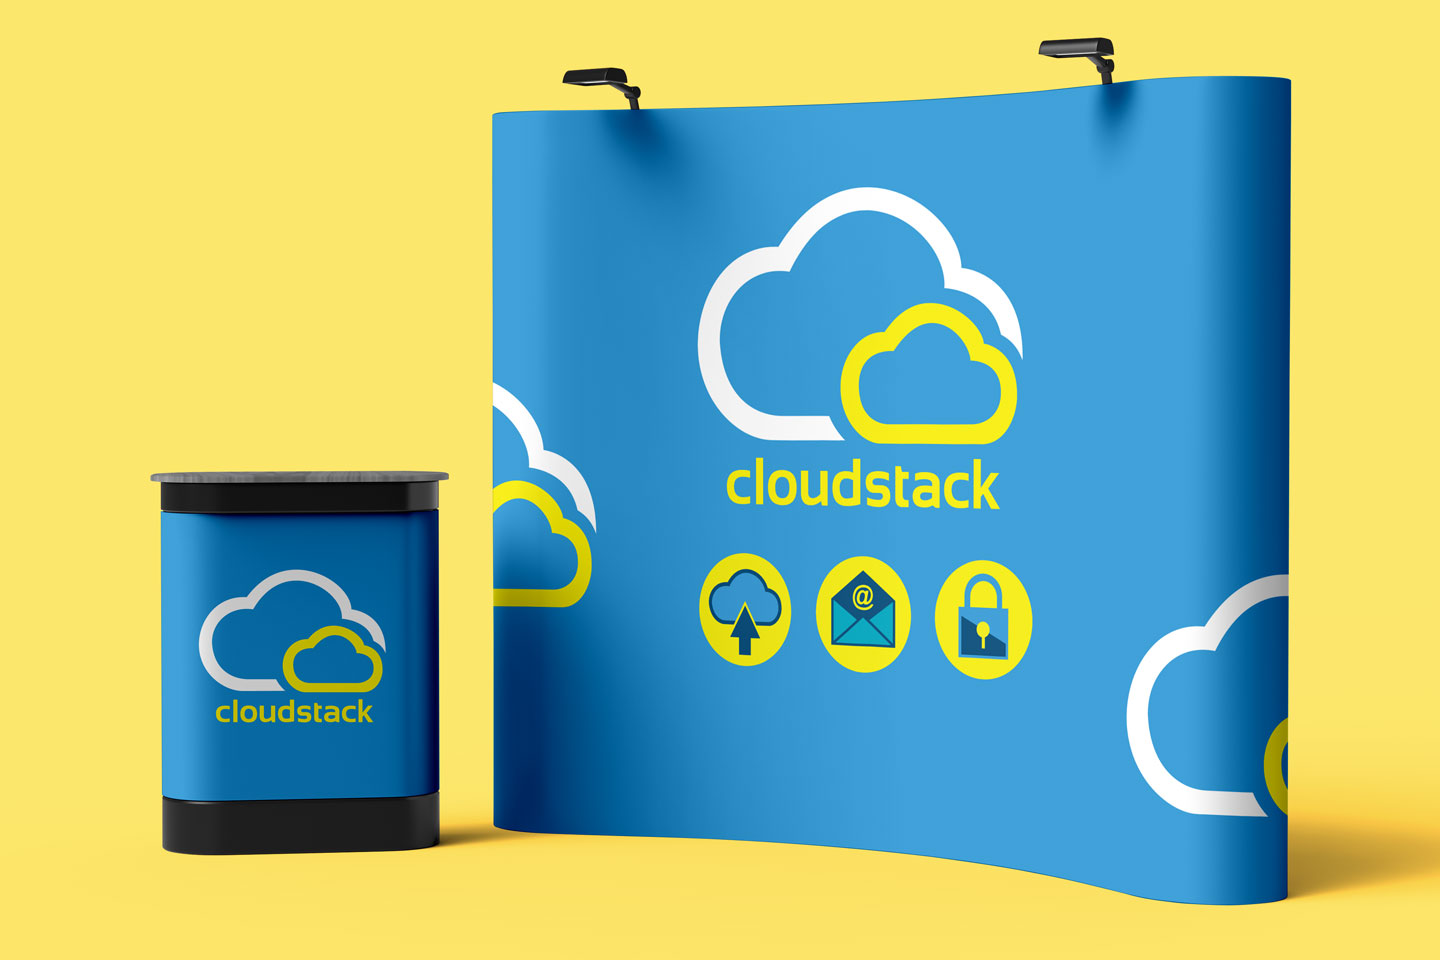 Evolve Promotion - Cloudstack Display Stand